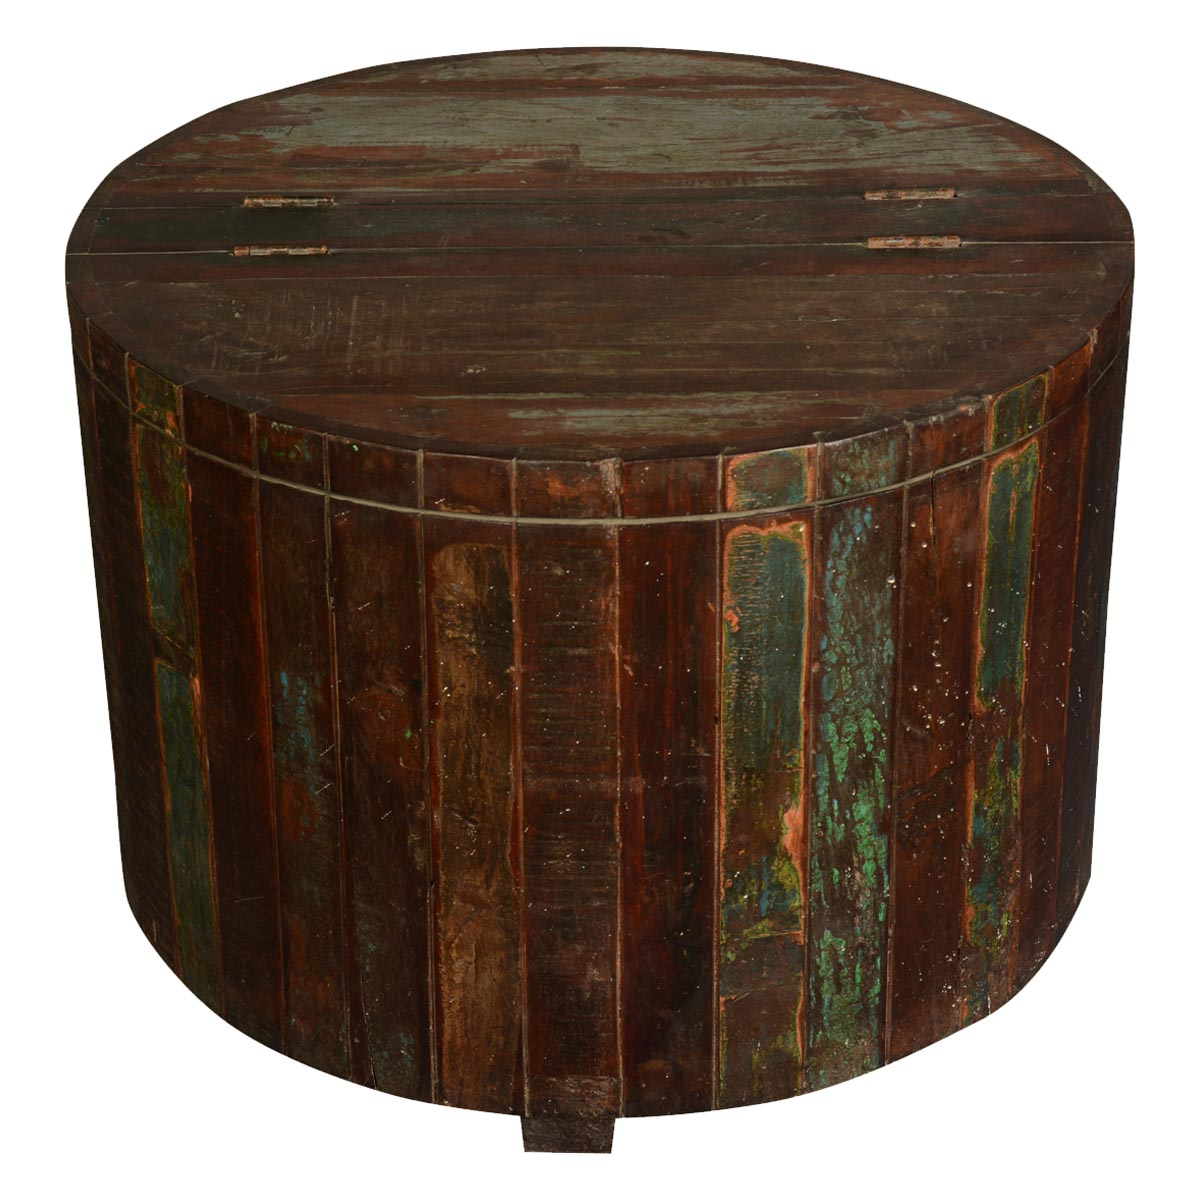 appalachian rustic reclaimed wood round barrel chest outdoor accent tables cork catcher table modern sectional black side lamps and upholstered dining chairs small barn door